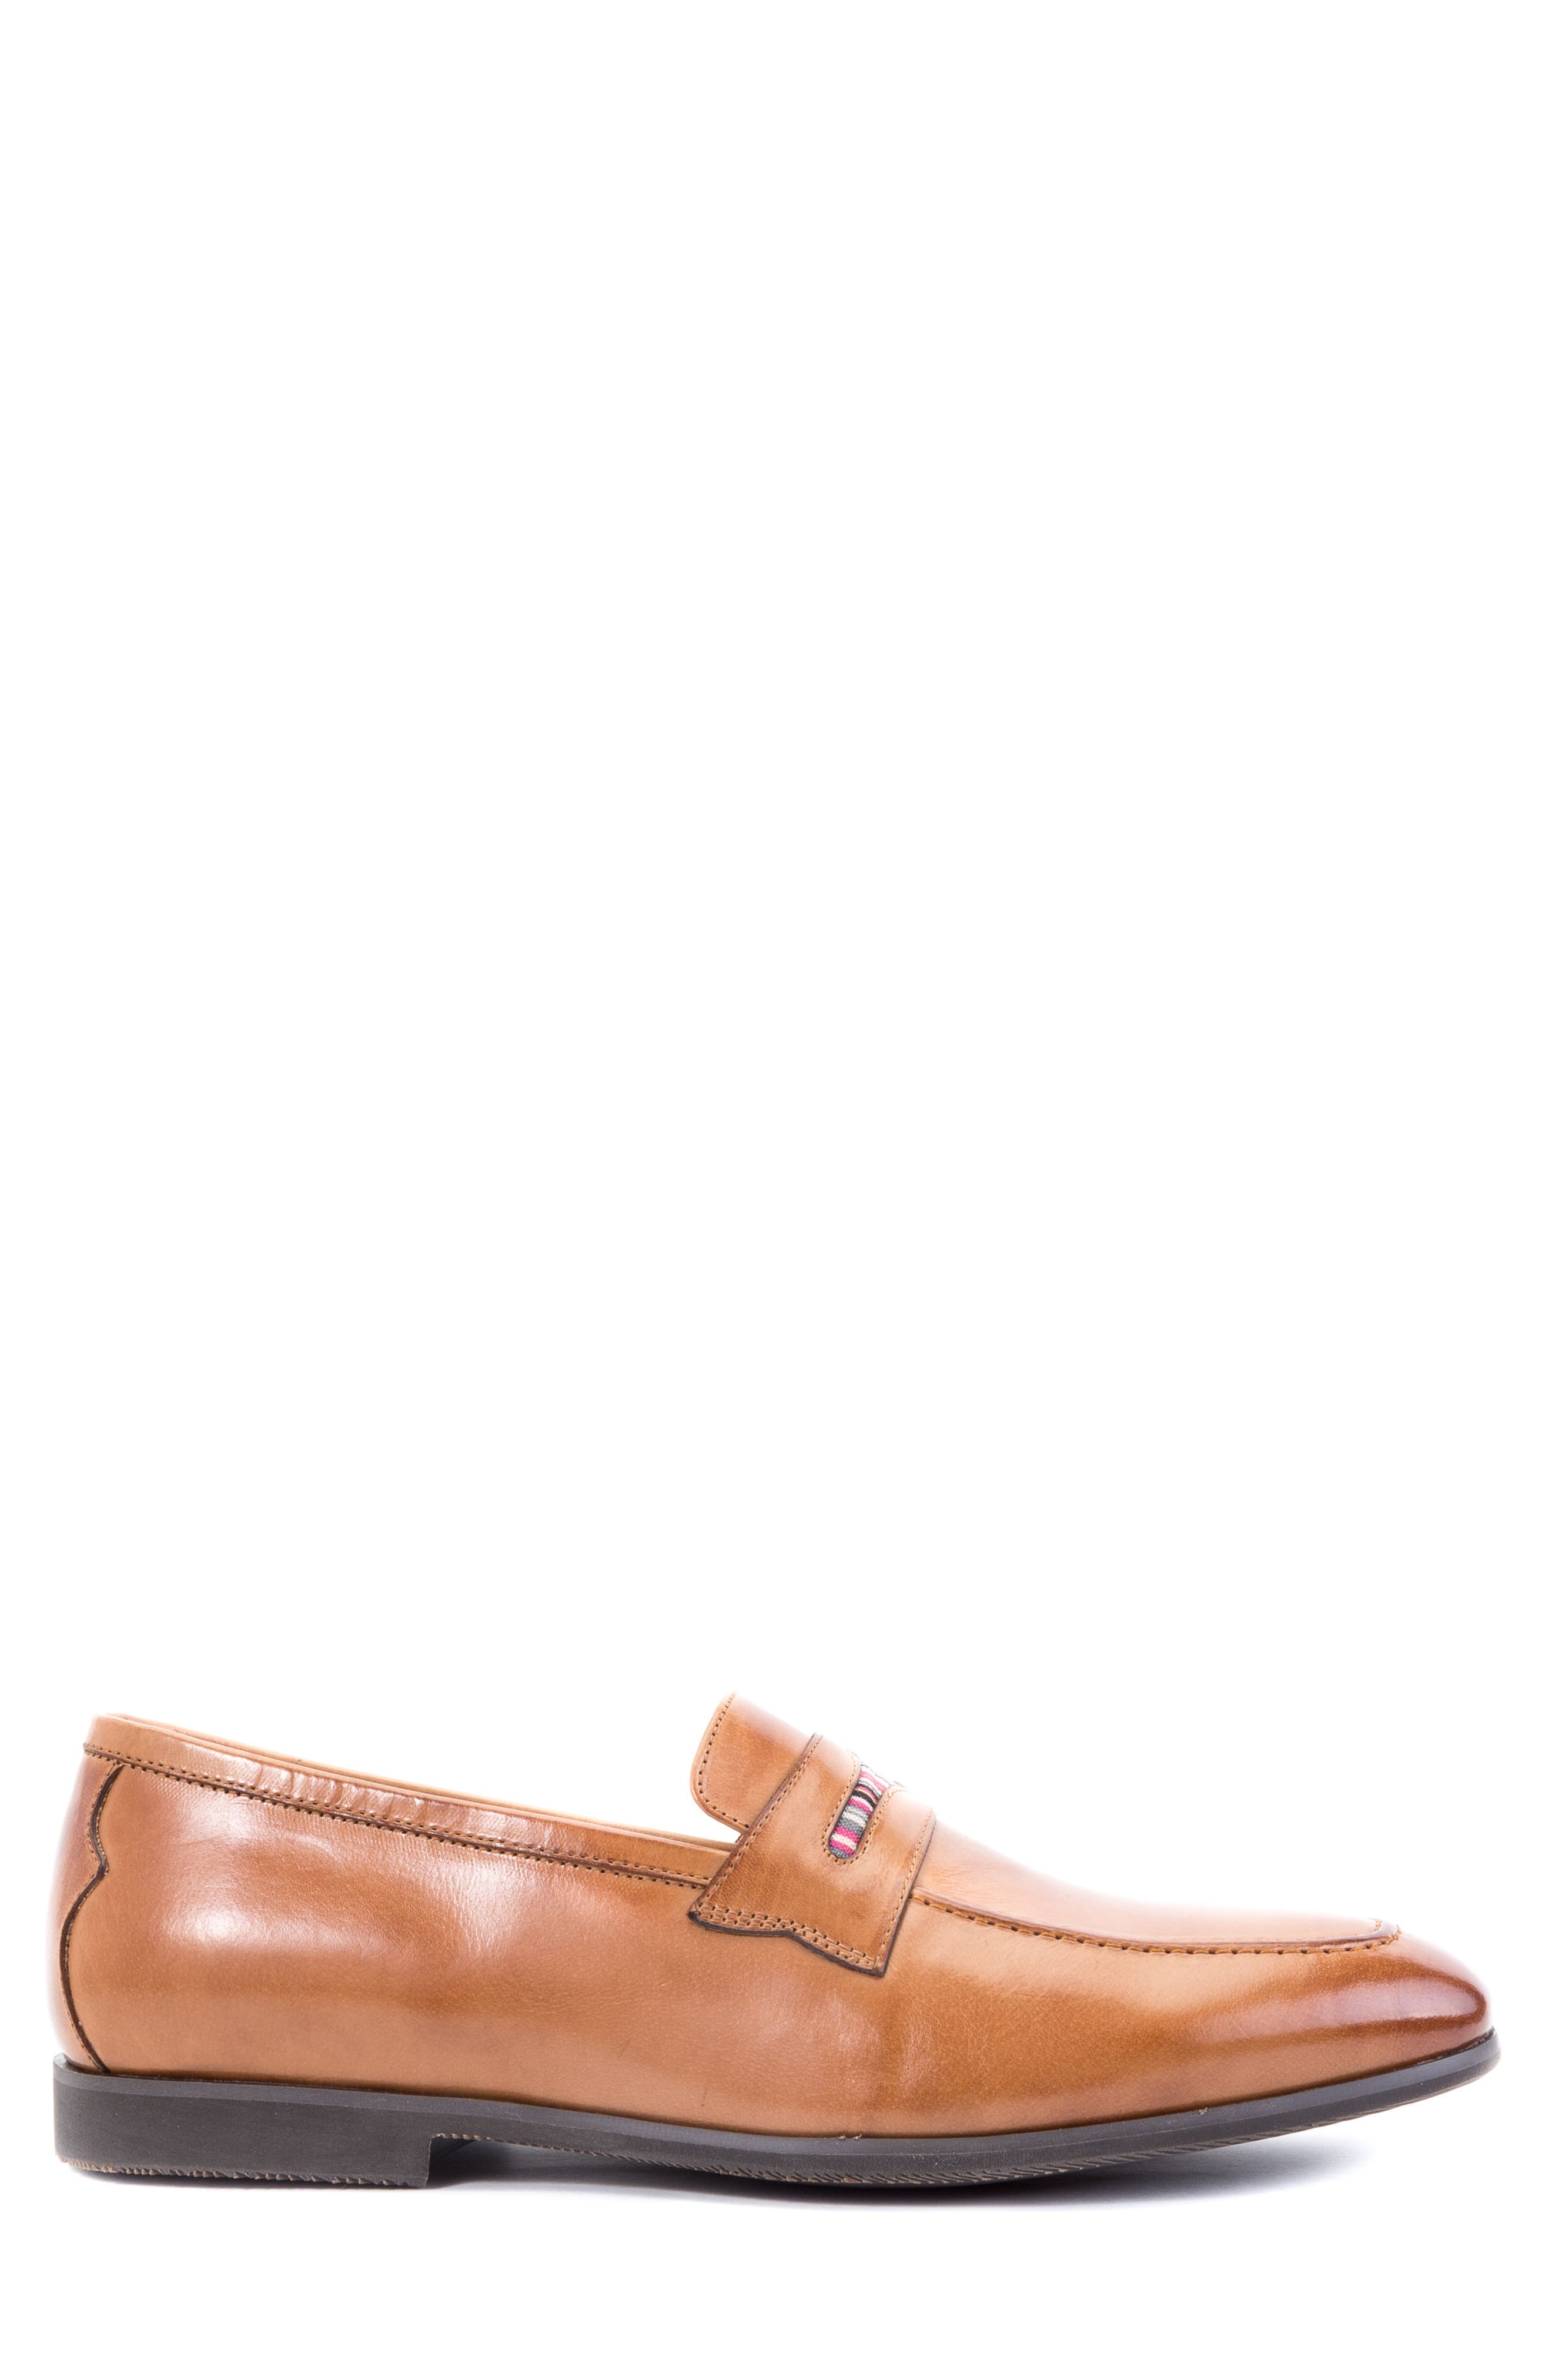 Hugo Penny Loafer,                             Alternate thumbnail 3, color,                             Cognac Leather